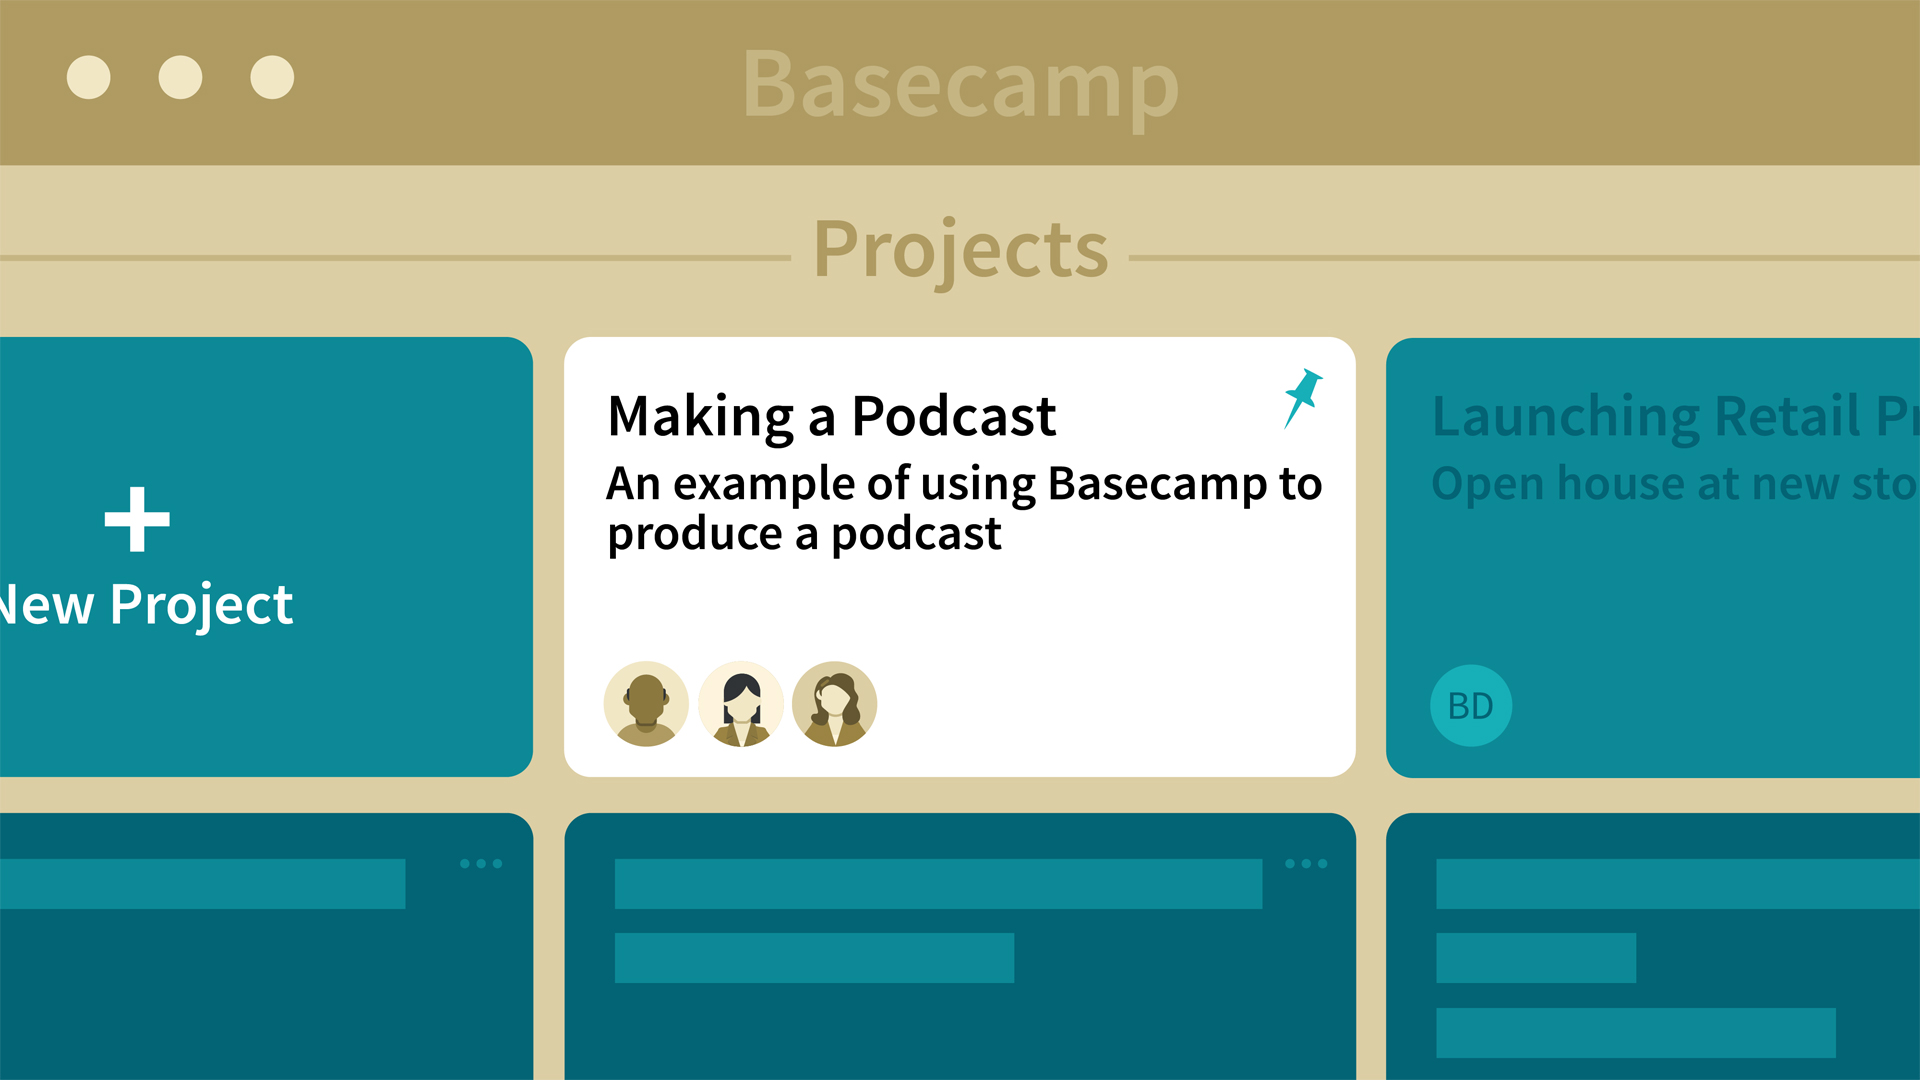 Creating a text doc in Basecamp